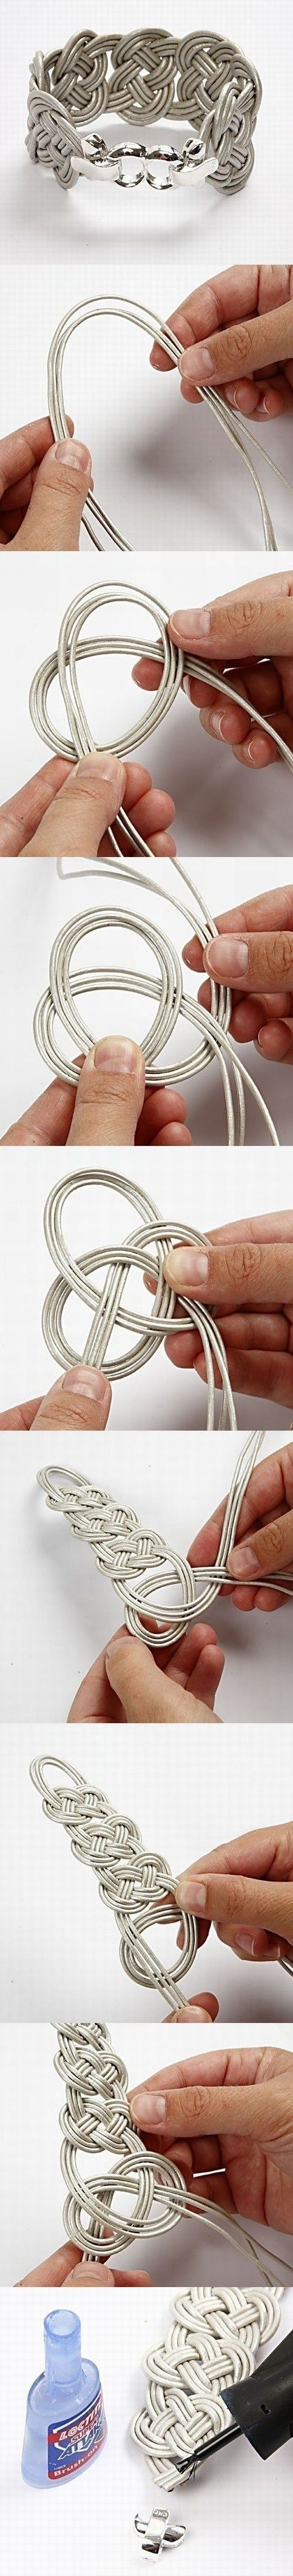 knot bracelet, pretty cool. girls might like to make one